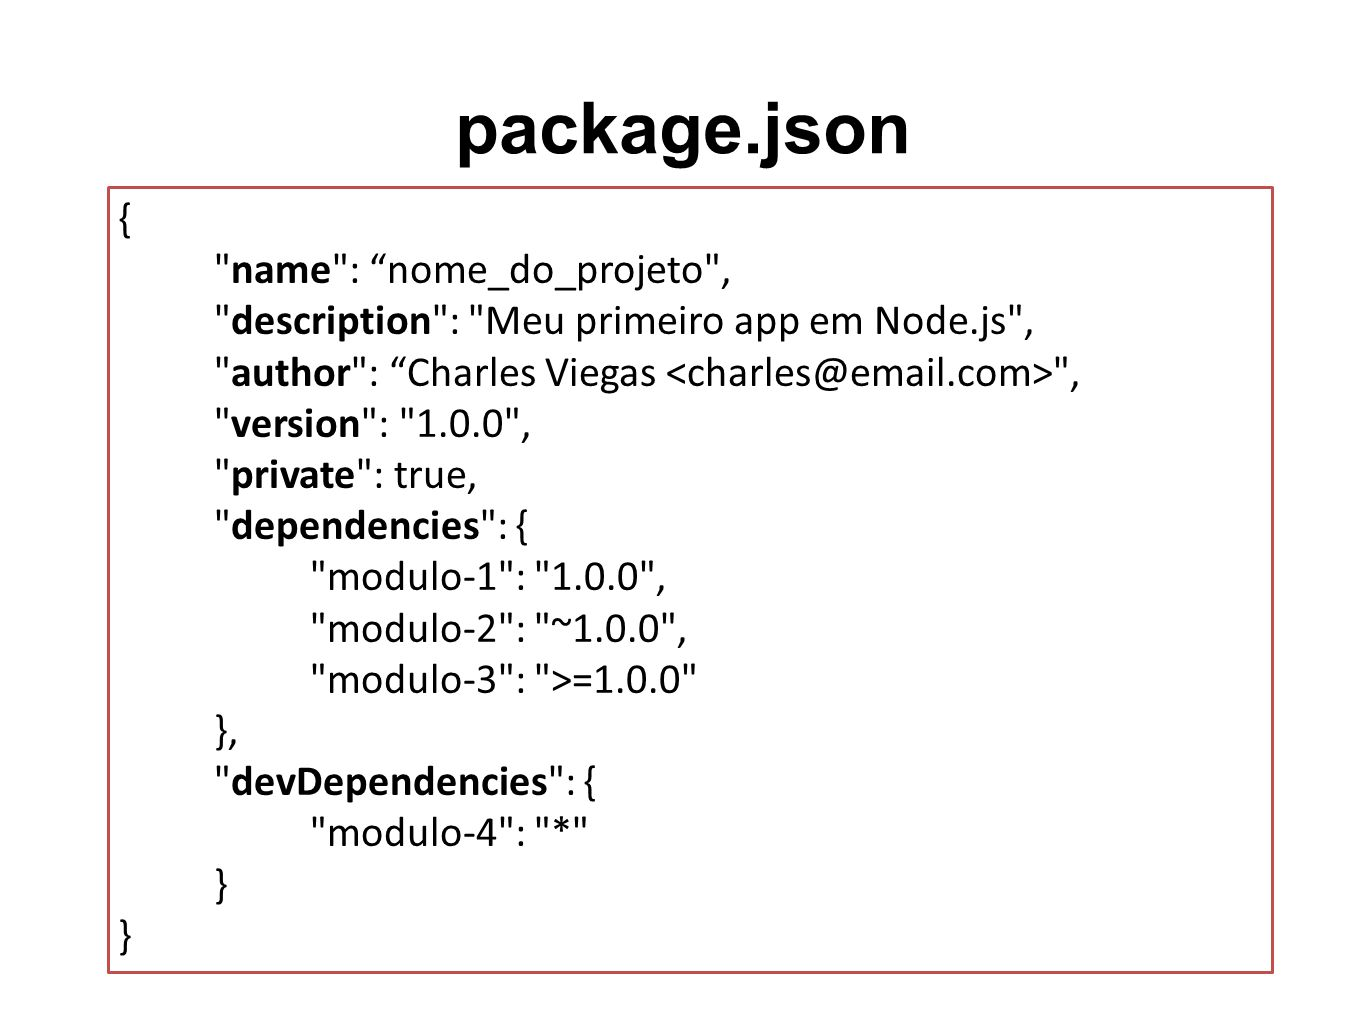 package.json { name : nome_do_projeto , description : Meu primeiro app em Node.js , author : Charles Viegas , version : 1.0.0 , private : true, dependencies : { modulo-1 : 1.0.0 , modulo-2 : ~1.0.0 , modulo-3 : >=1.0.0 }, devDependencies : { modulo-4 : * }